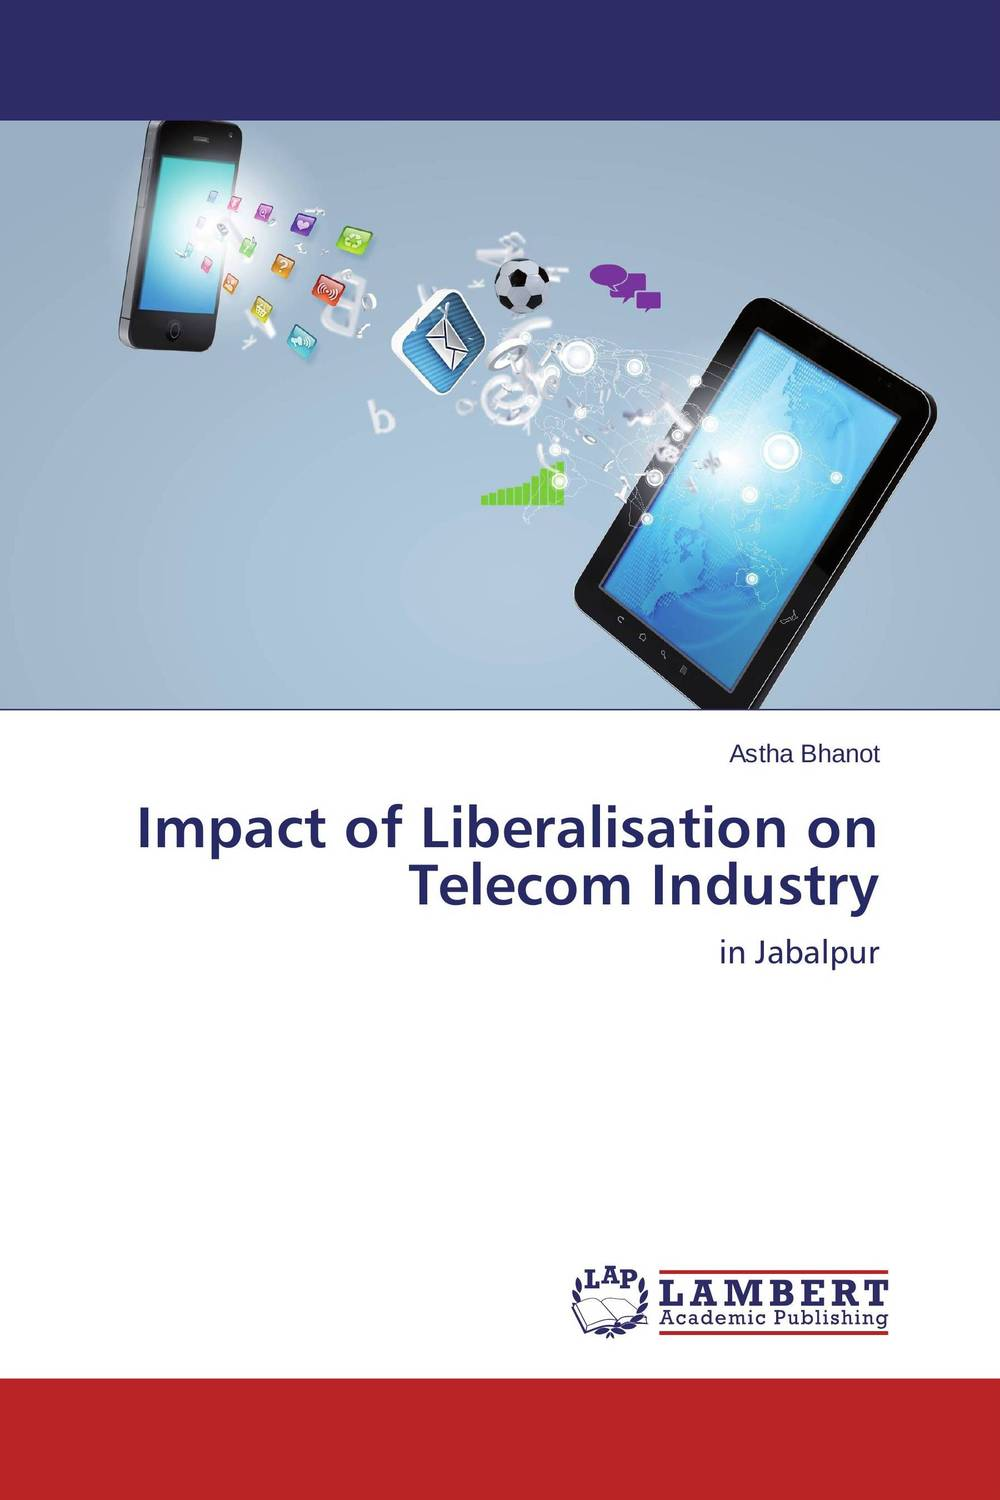 Impact of Liberalisation on Telecom Industry martha yilma and sindu workhen kebede impact of trade liberalization on ethiopian agriculture vs industry